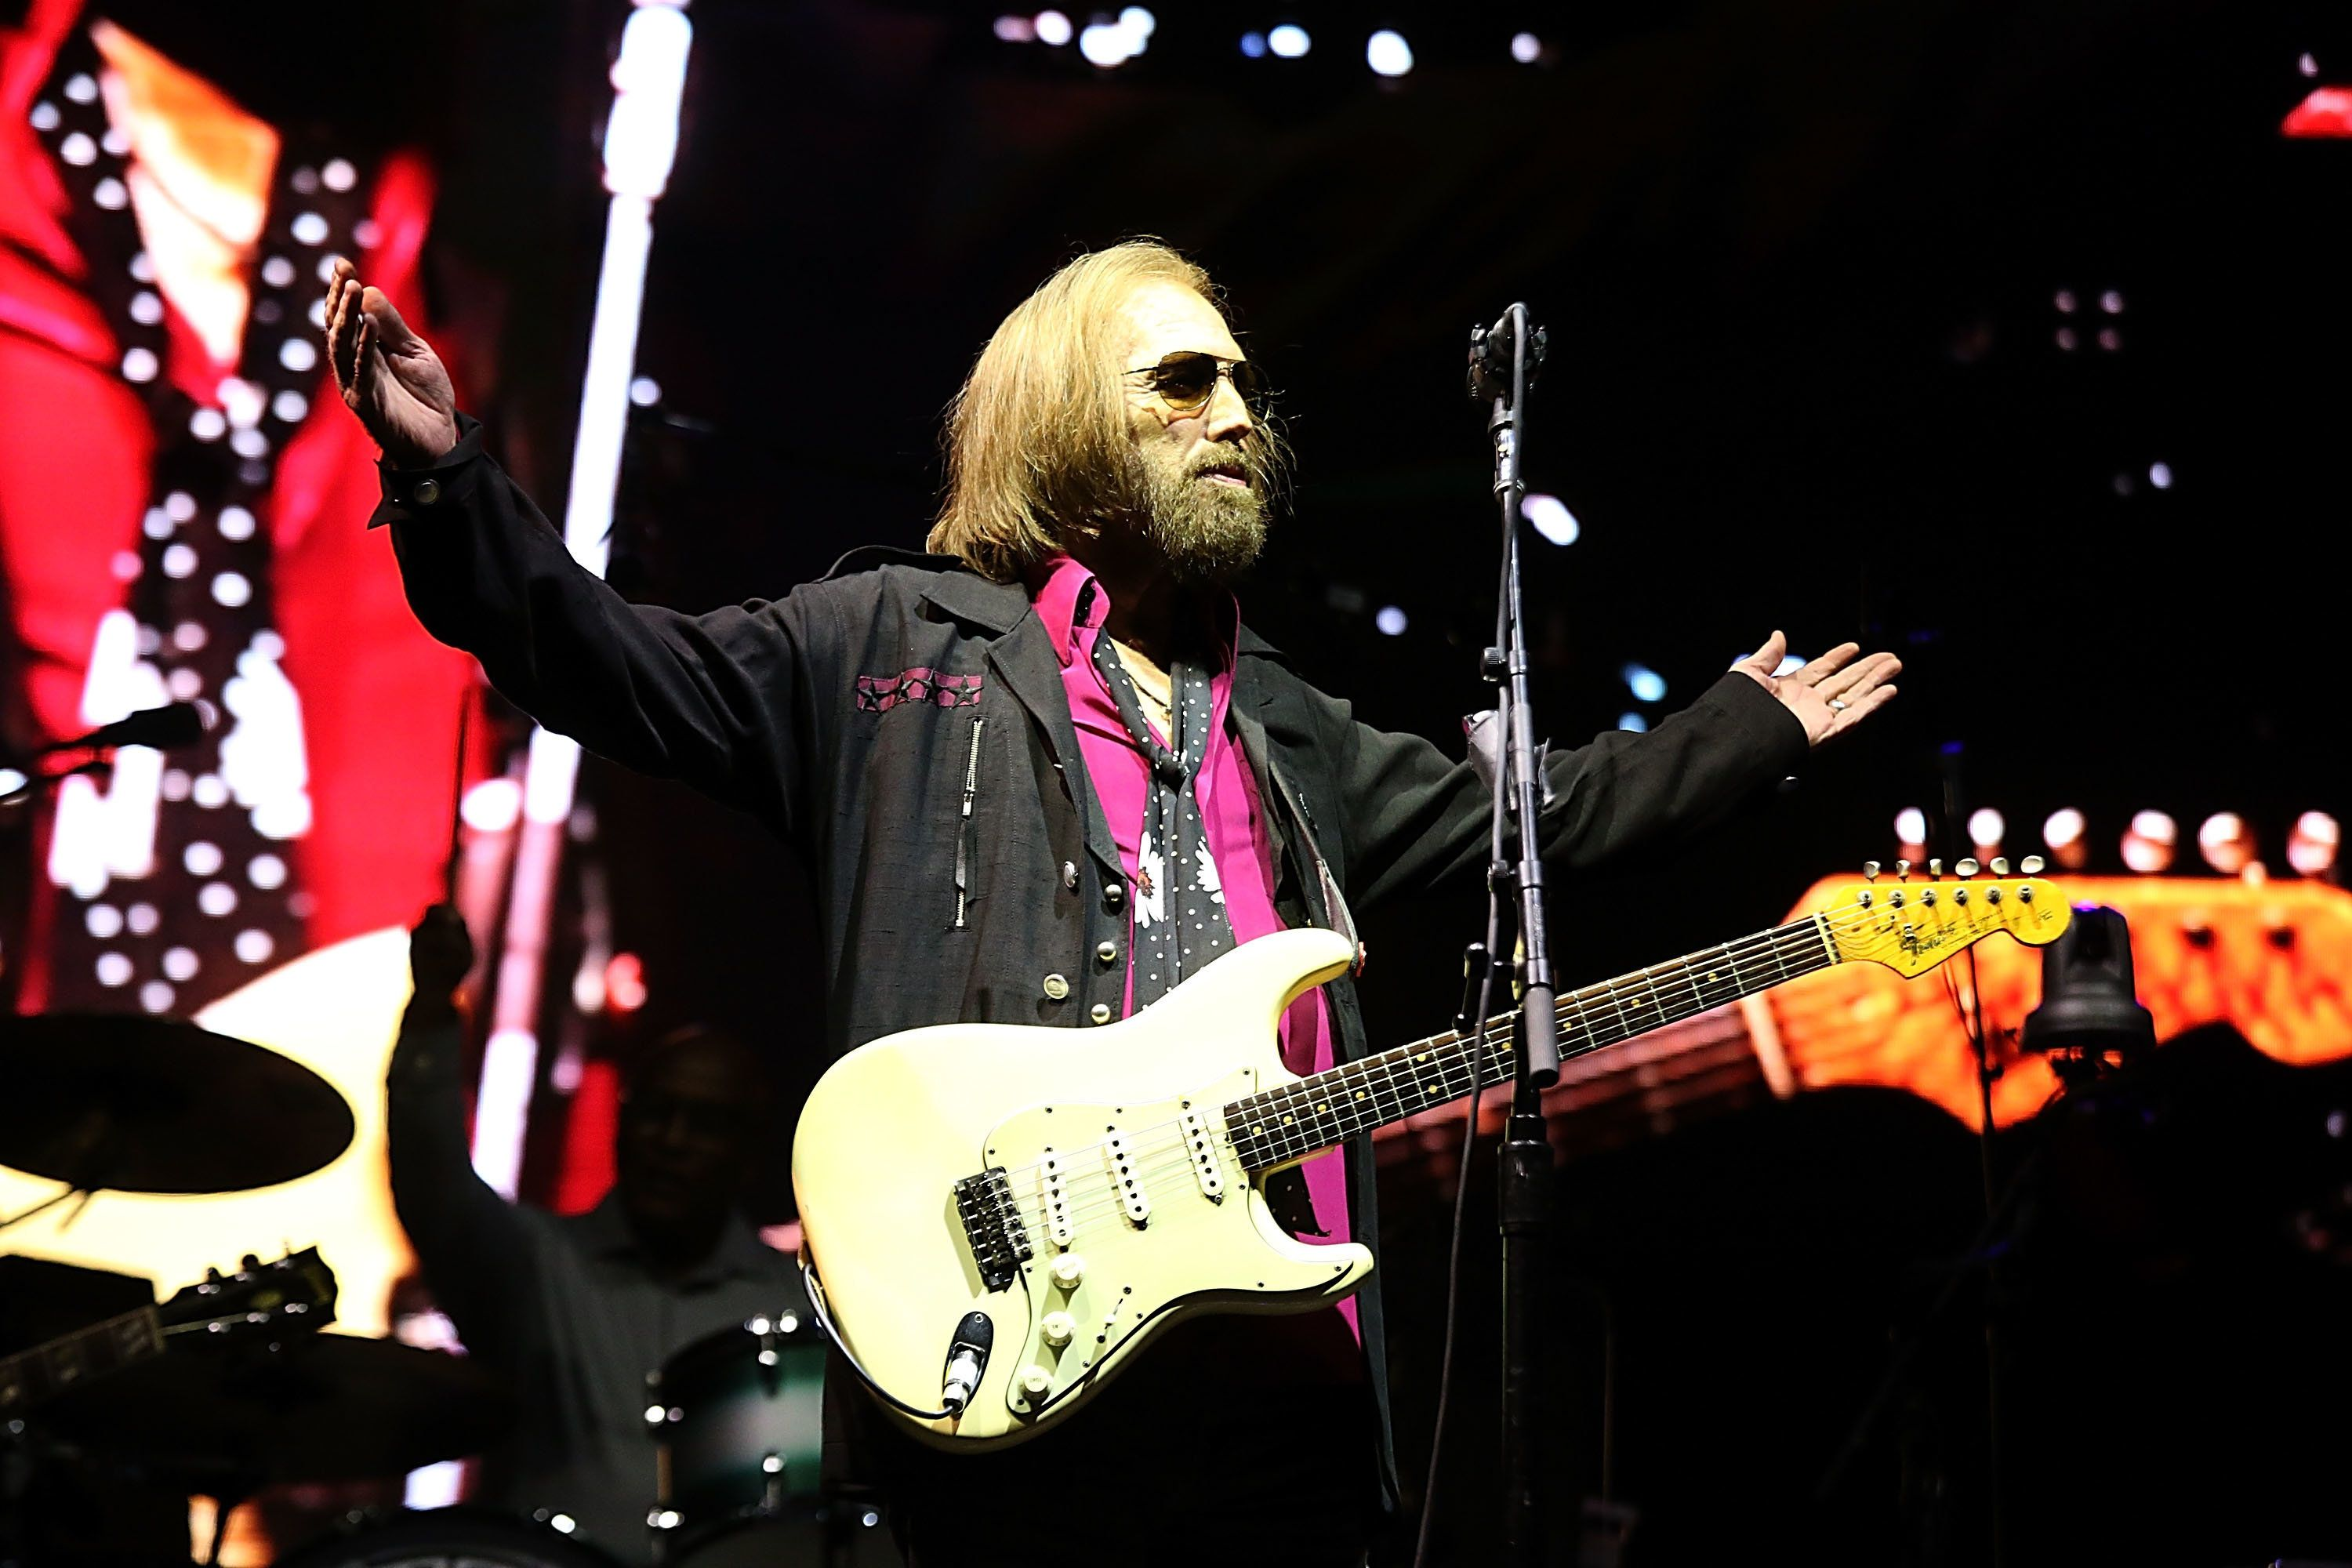 DEL MAR, CALIFORNIA - SEPTEMBER 17:  Tom Petty performs in concert on the third day of KAABOO Del Mar on September 17, 2017 in Del Mar, California.  (Photo by Gary Miller/Getty Images)